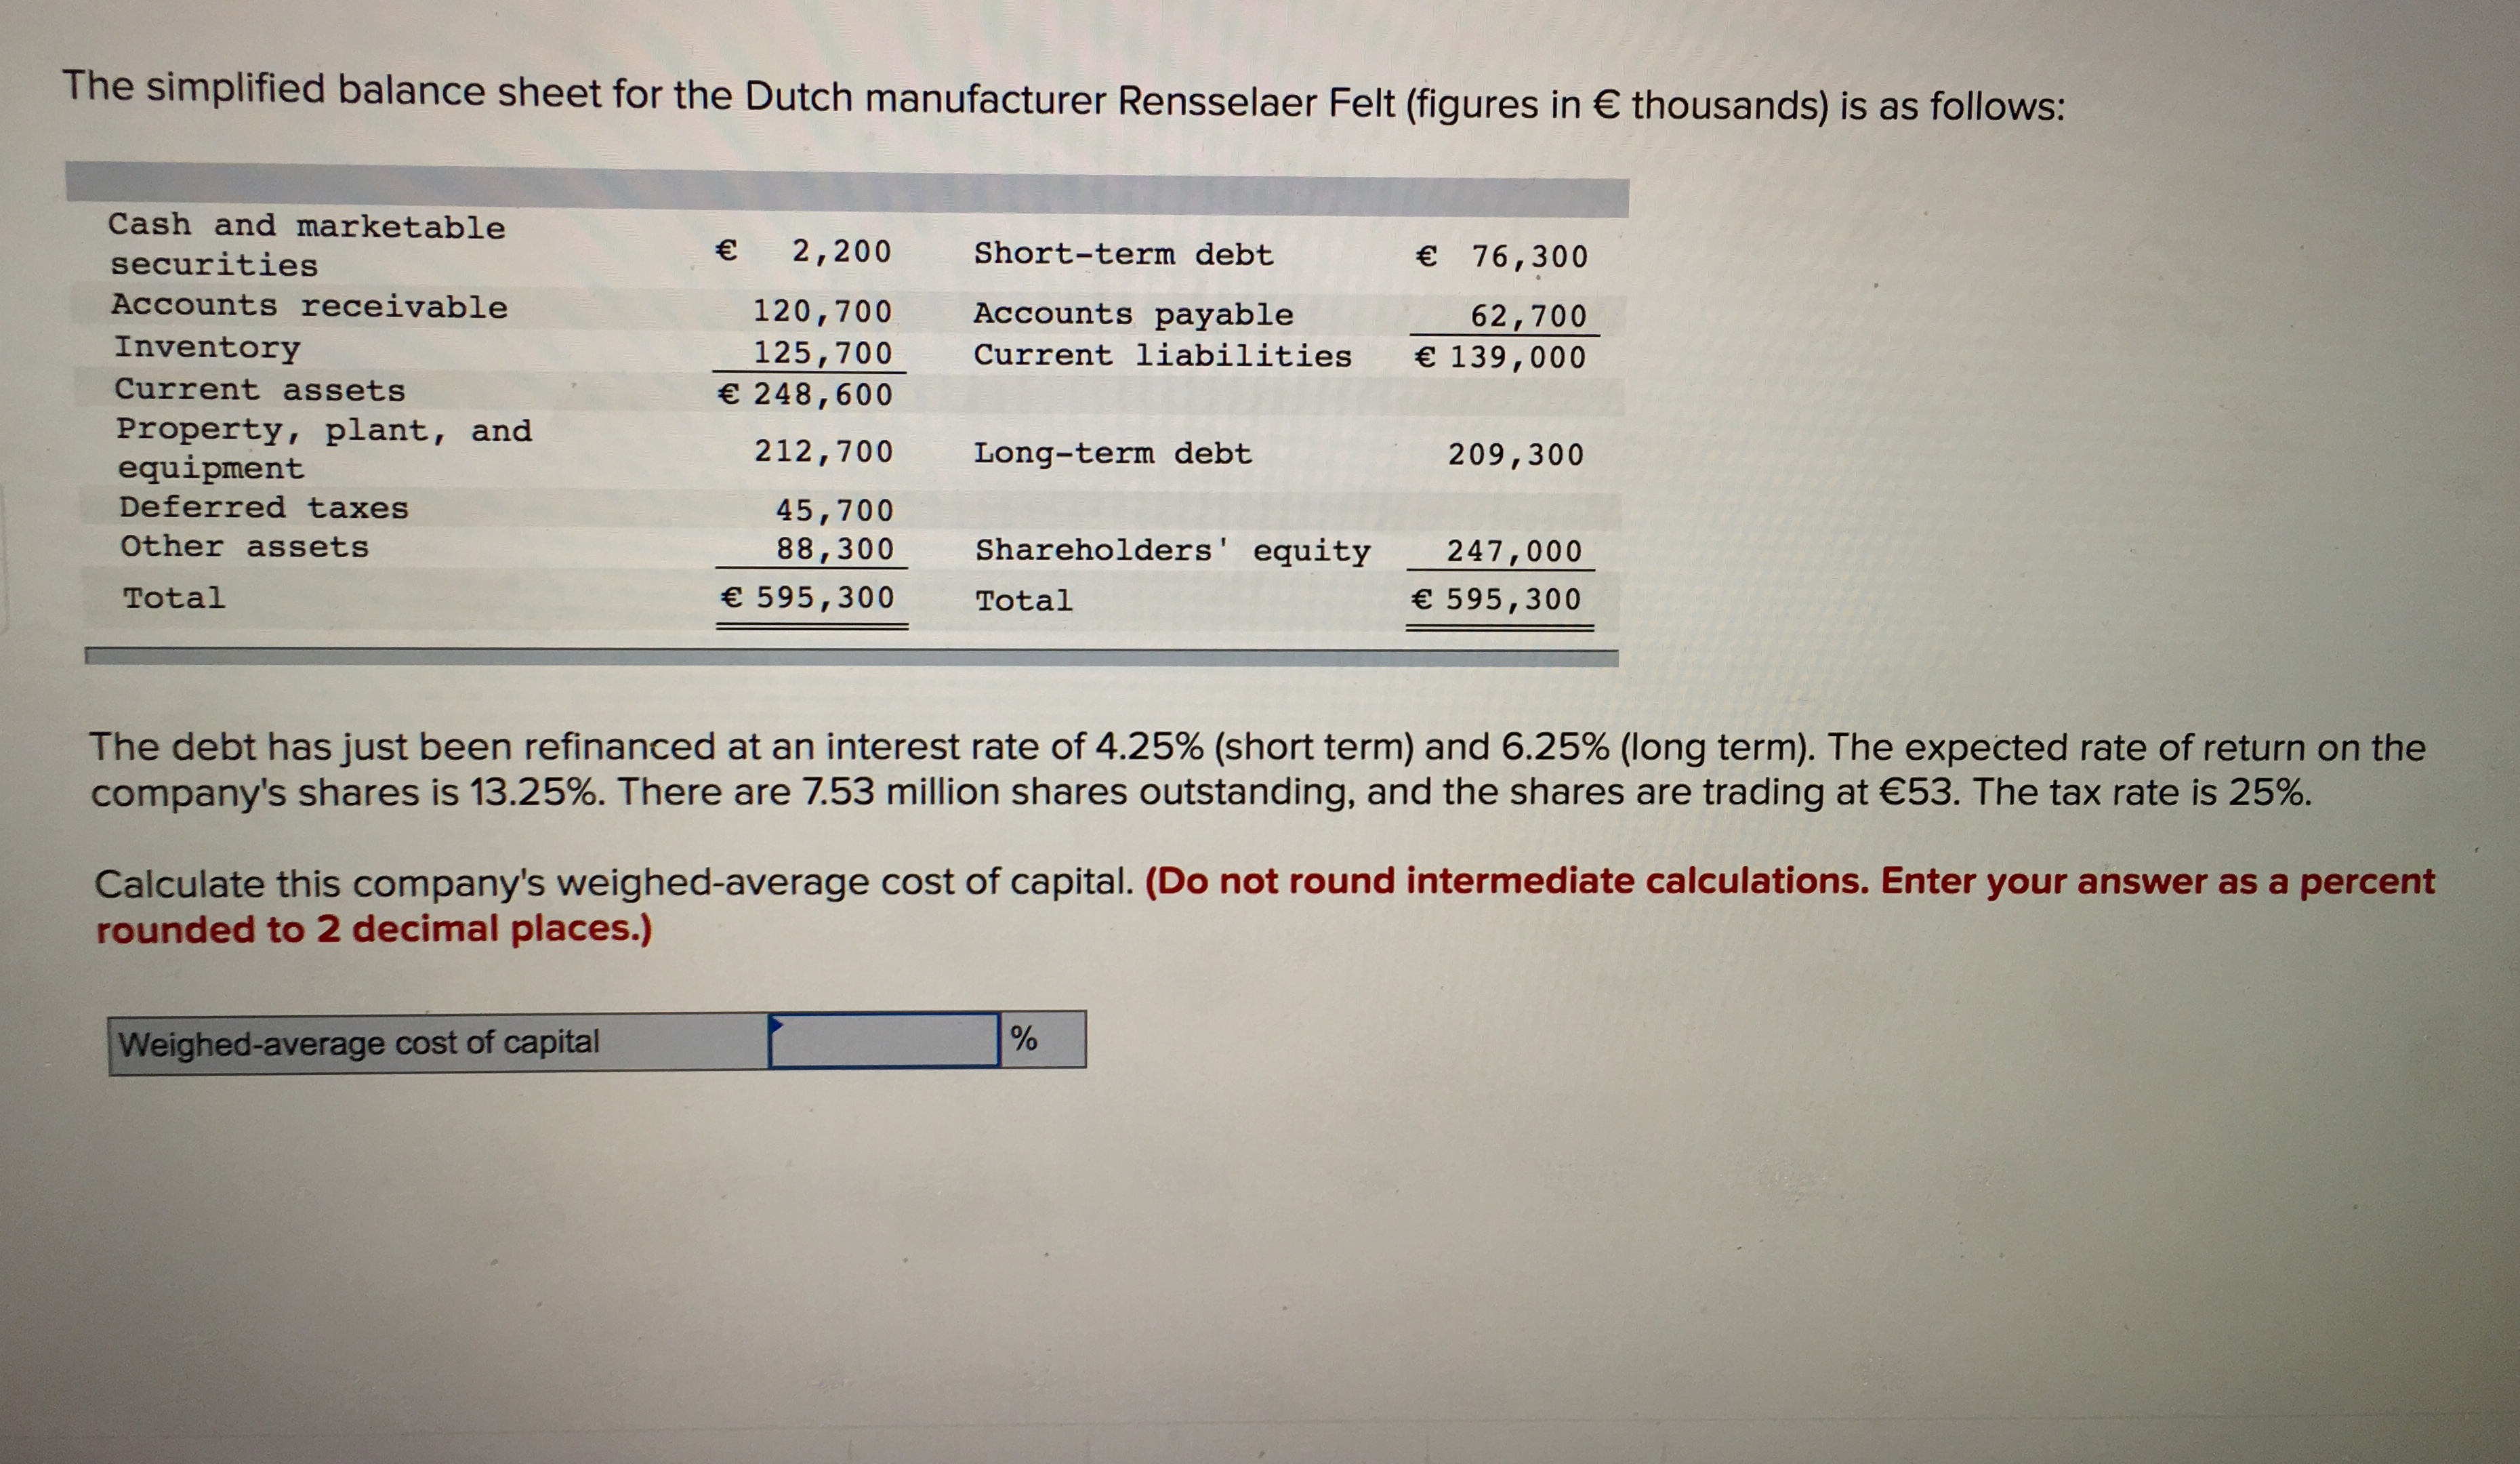 The simplified balance sheet for the Dutch manufacturer Rensselaer Felt (figures in € thousands) is as follows: Cash and marketable 2,200 € Short-term debt € 76,300 securities Accounts receivable 120,700 Accounts payable 62,700 € 139,000 Inventory 125,700 € 248,600 Current liabilities Current assets Property, plant, and equipment 212,700 Long-term debt 209,300 Deferred taxes 45,700 88,300 Other assets Shareholders' equity 247,000 Total € 595,300 € 595,300 Total The debt has just been refinanced at an interest rate of 4.25% (short term) and 6.25% (long term). The expected rate of return on the company's shares is 13.25%. There are 7.53 million shares outstanding, and the shares are trading at €53. The tax rate is 25%. Calculate this company's weighed-average cost of capital. (Do not round intermediate calculations. Enter your answer as a percent rounded to 2 decimal places.) Weighed-average cost of capital